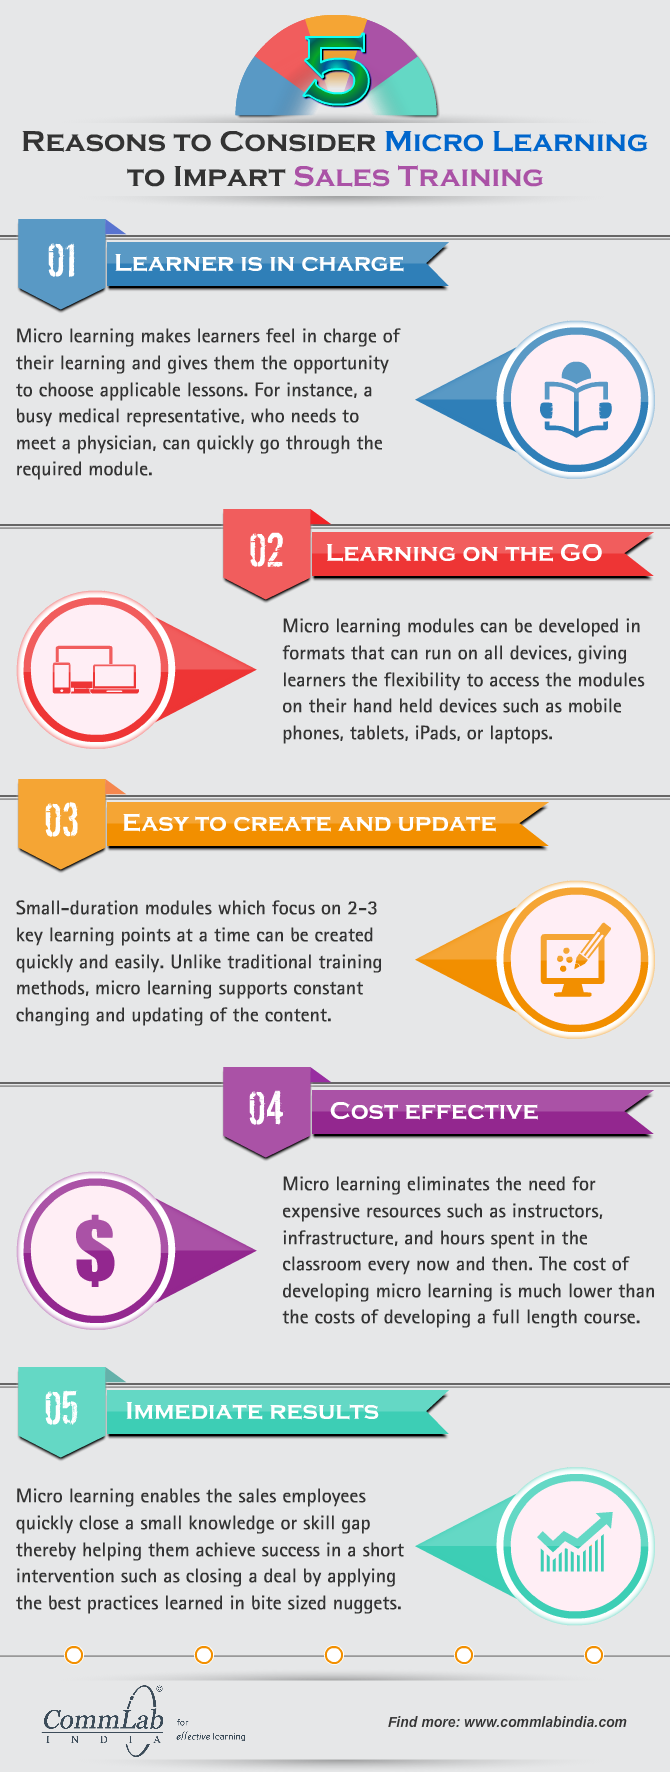 Micro-Learning: Paving the Way for Effective Training [Infographic]